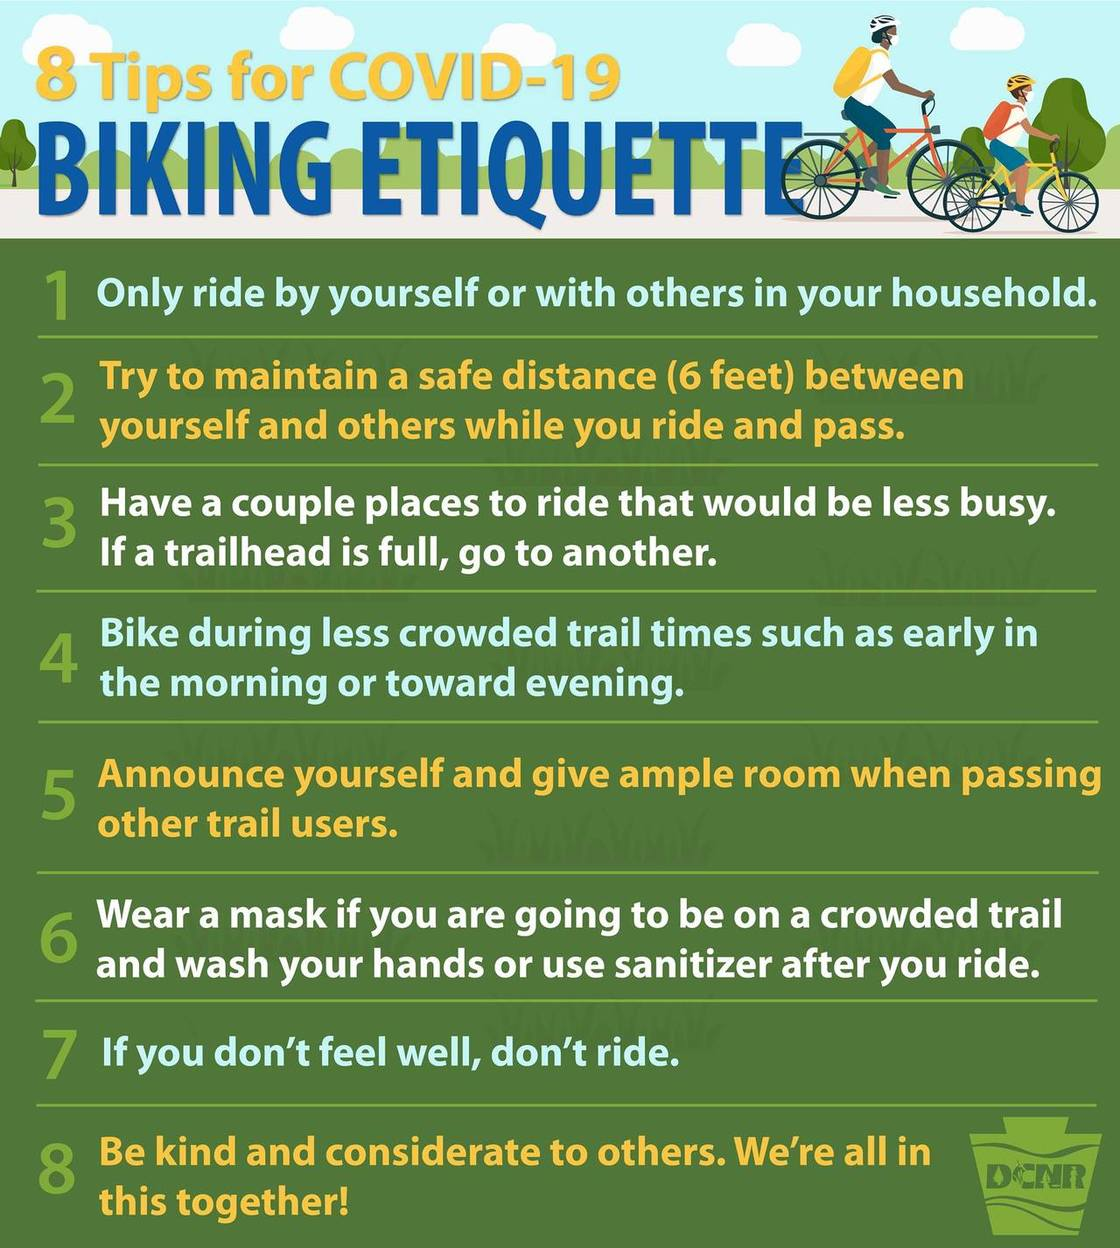 8 Tip for COVID-19 Biking Etiquette | Courtesy Pennsylvania Department of Conservation and Natural Resources